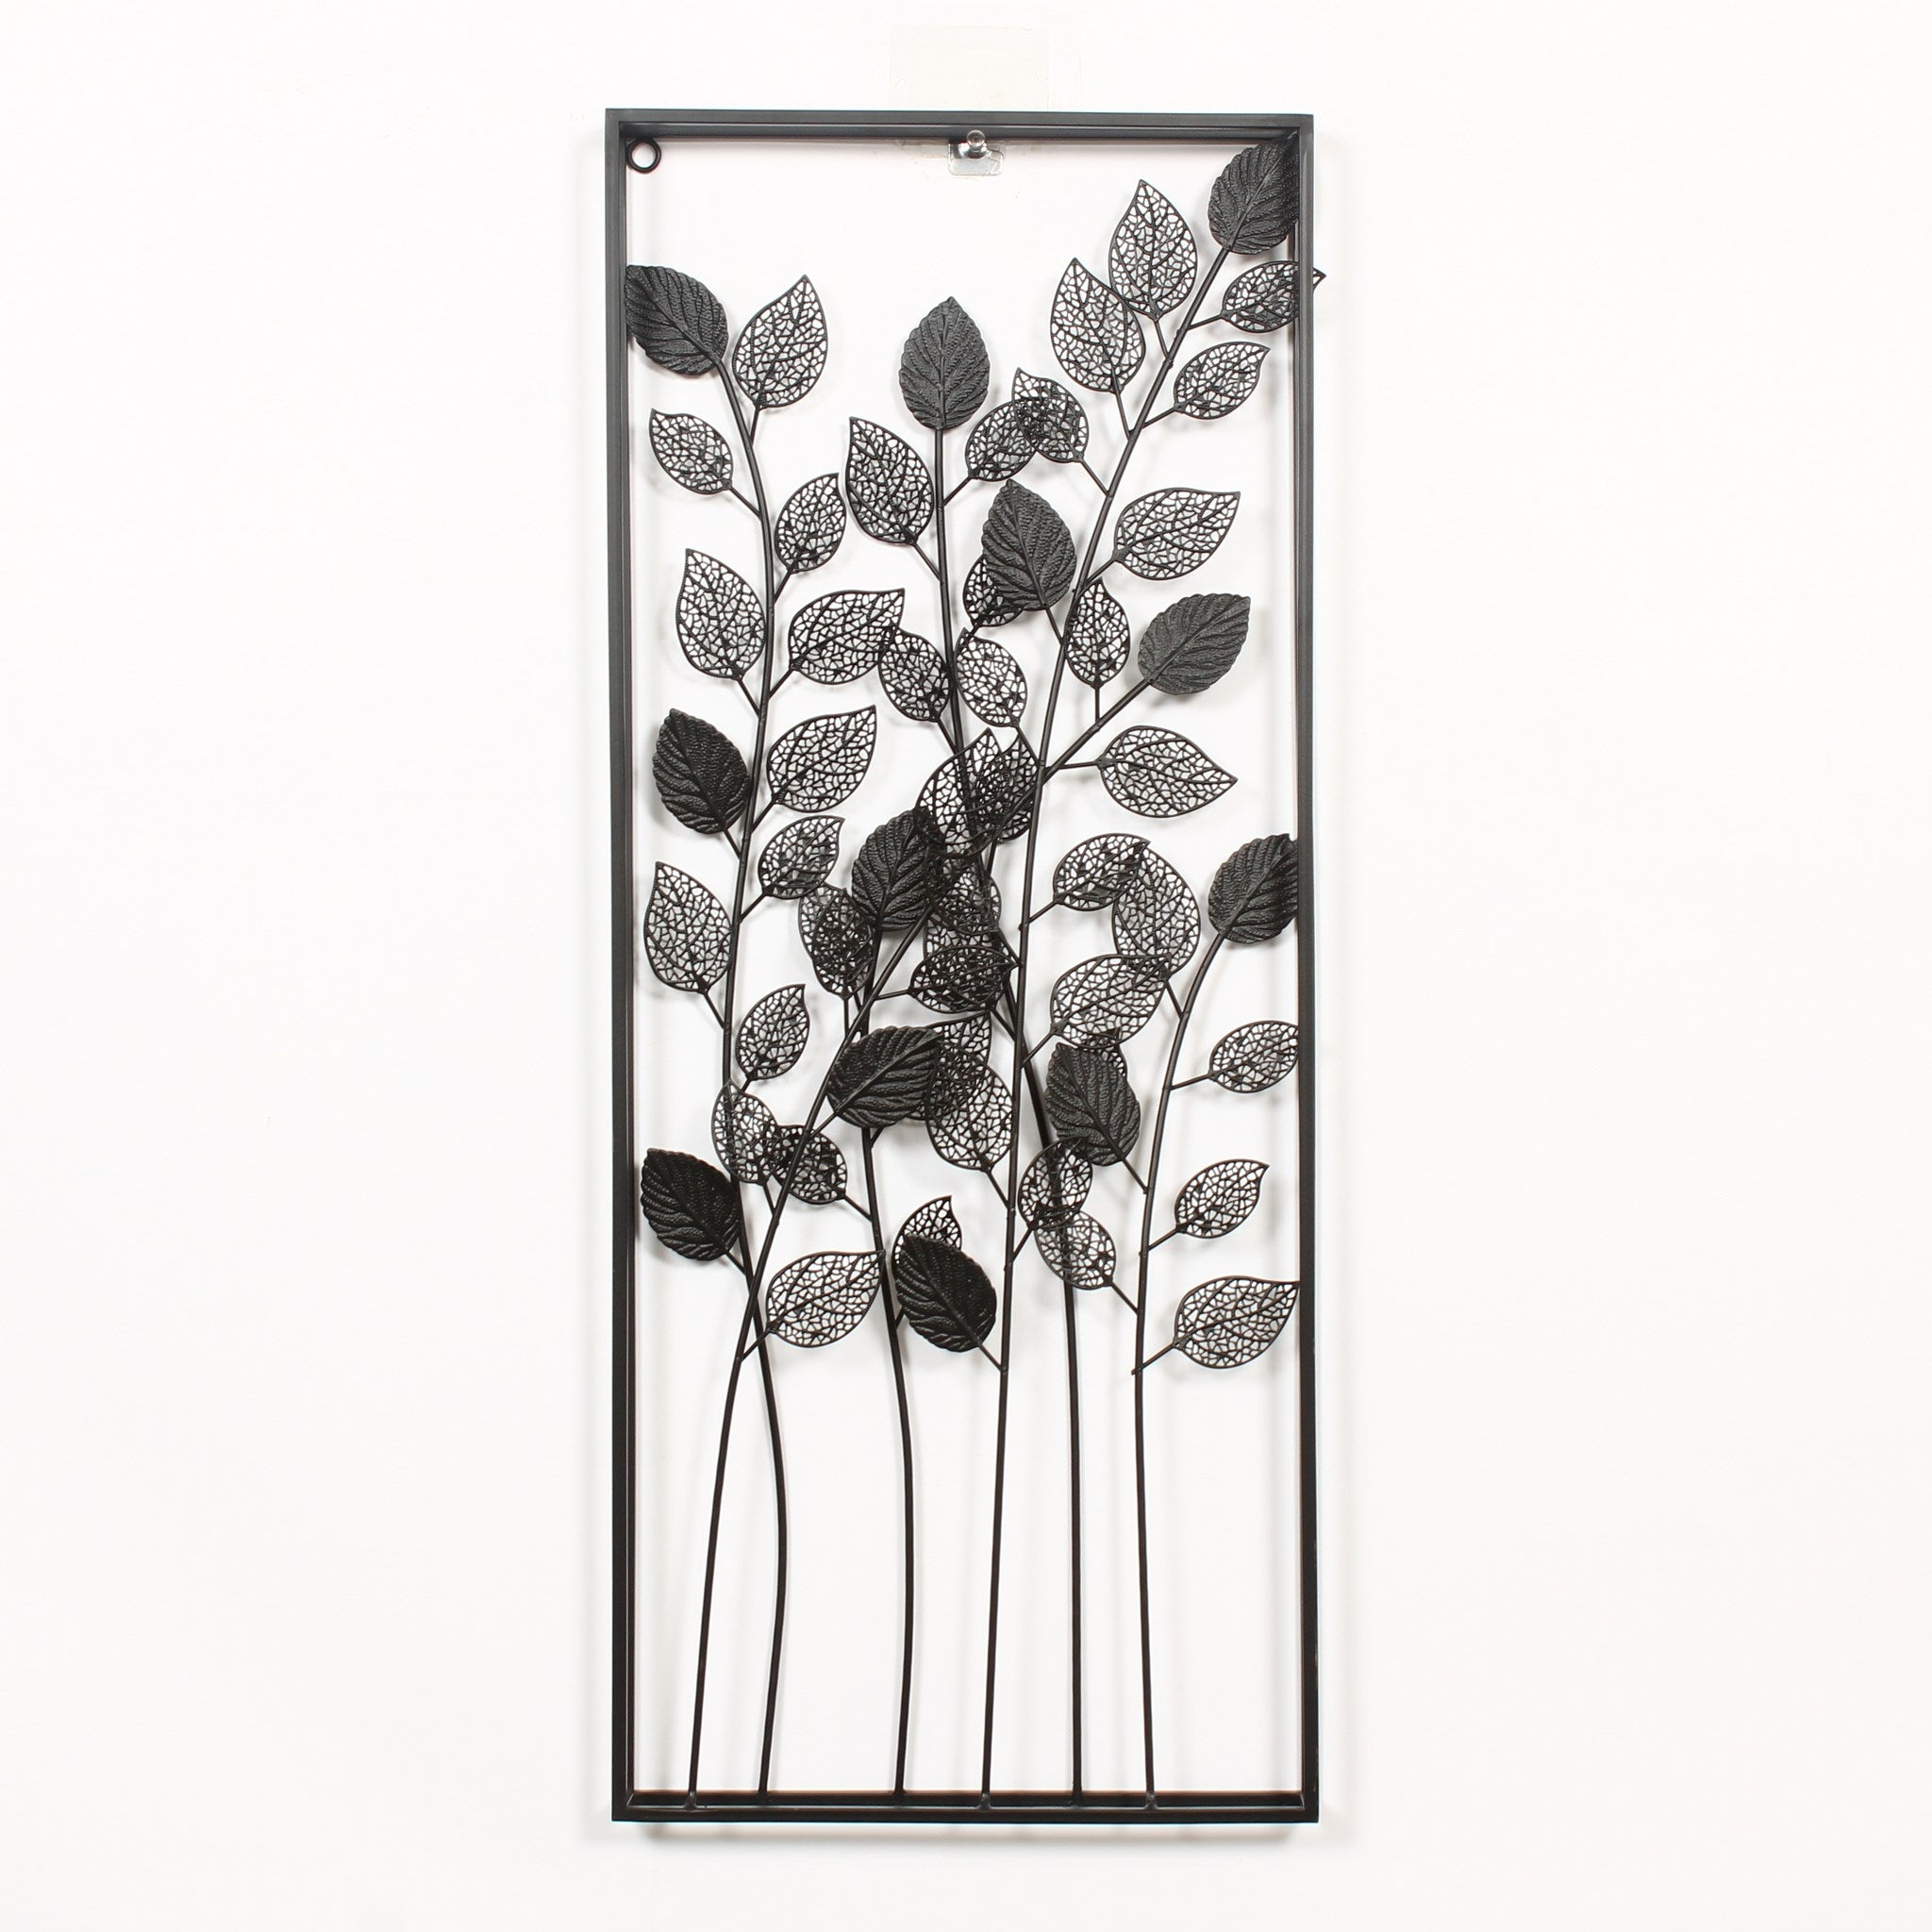 LEAFY TREES METAL WALL ART WITH FRAME